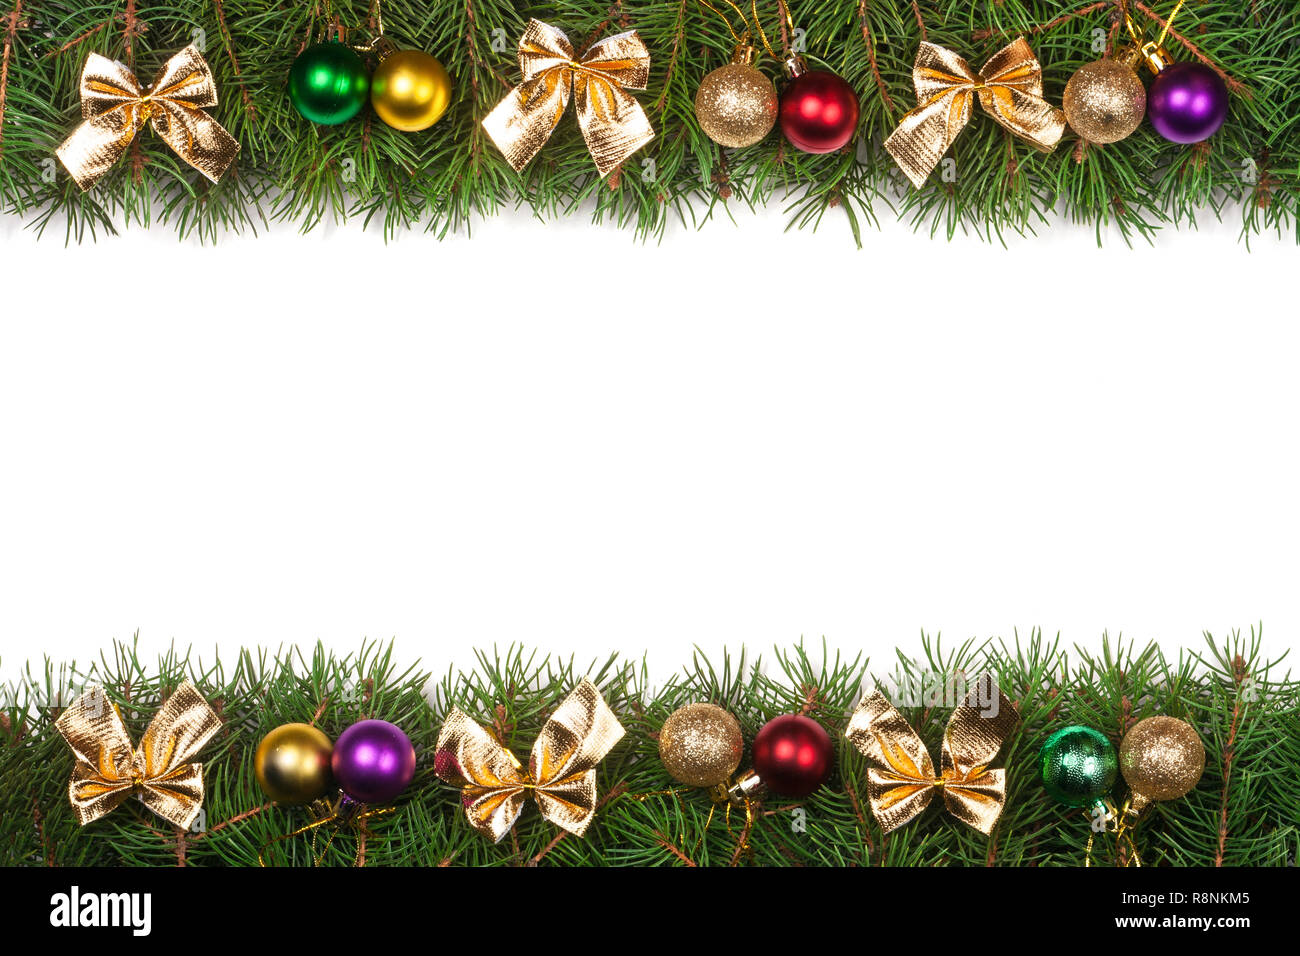 Christmas Frame.Christmas Frame Made Of Fir Branches Decorated With Balls